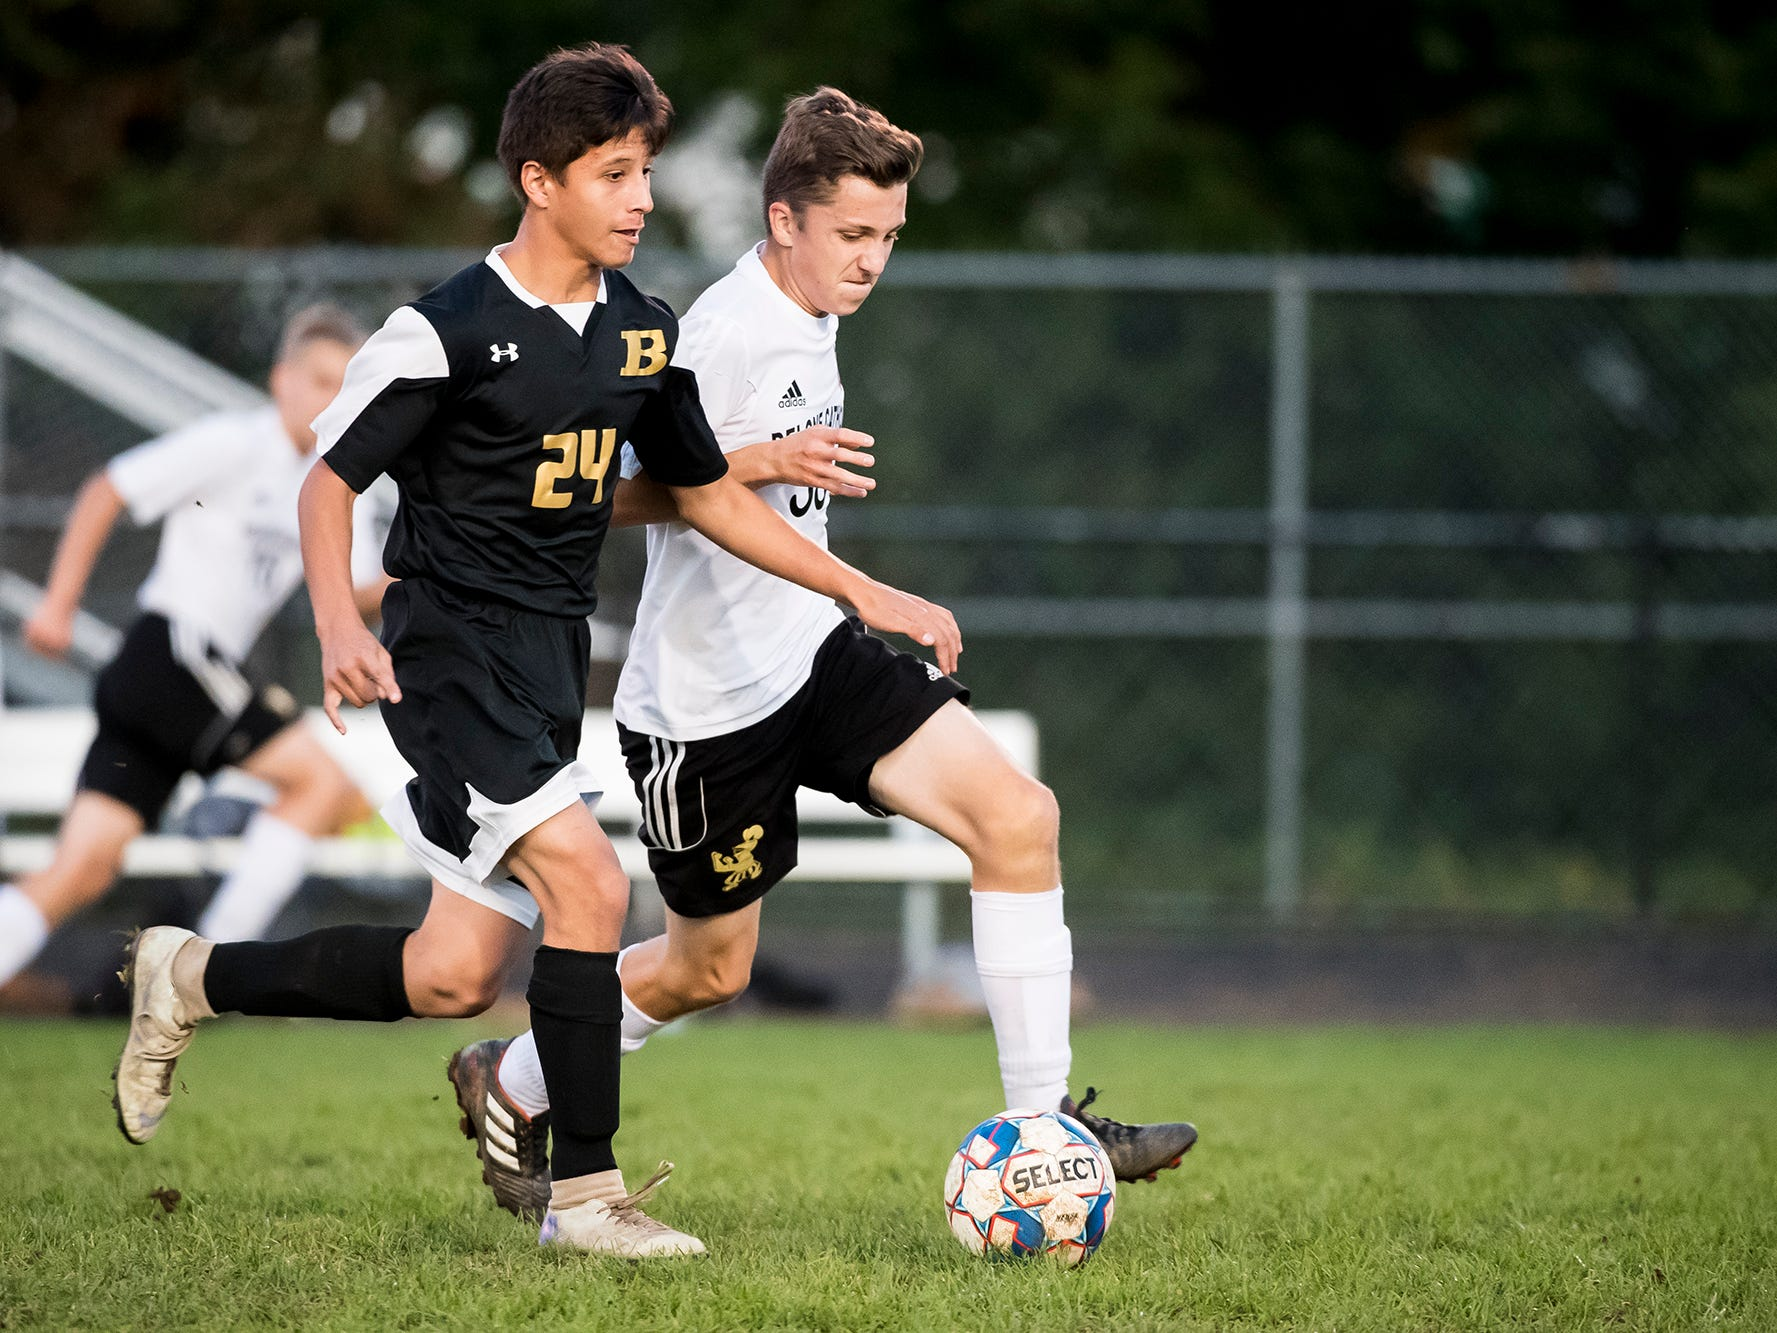 Biglervillee's Isiah Kuykendall and Delone Catholic's Owen Alster chase after the ball on Wednesday, October 3, 2018. The Canners won 3-0.